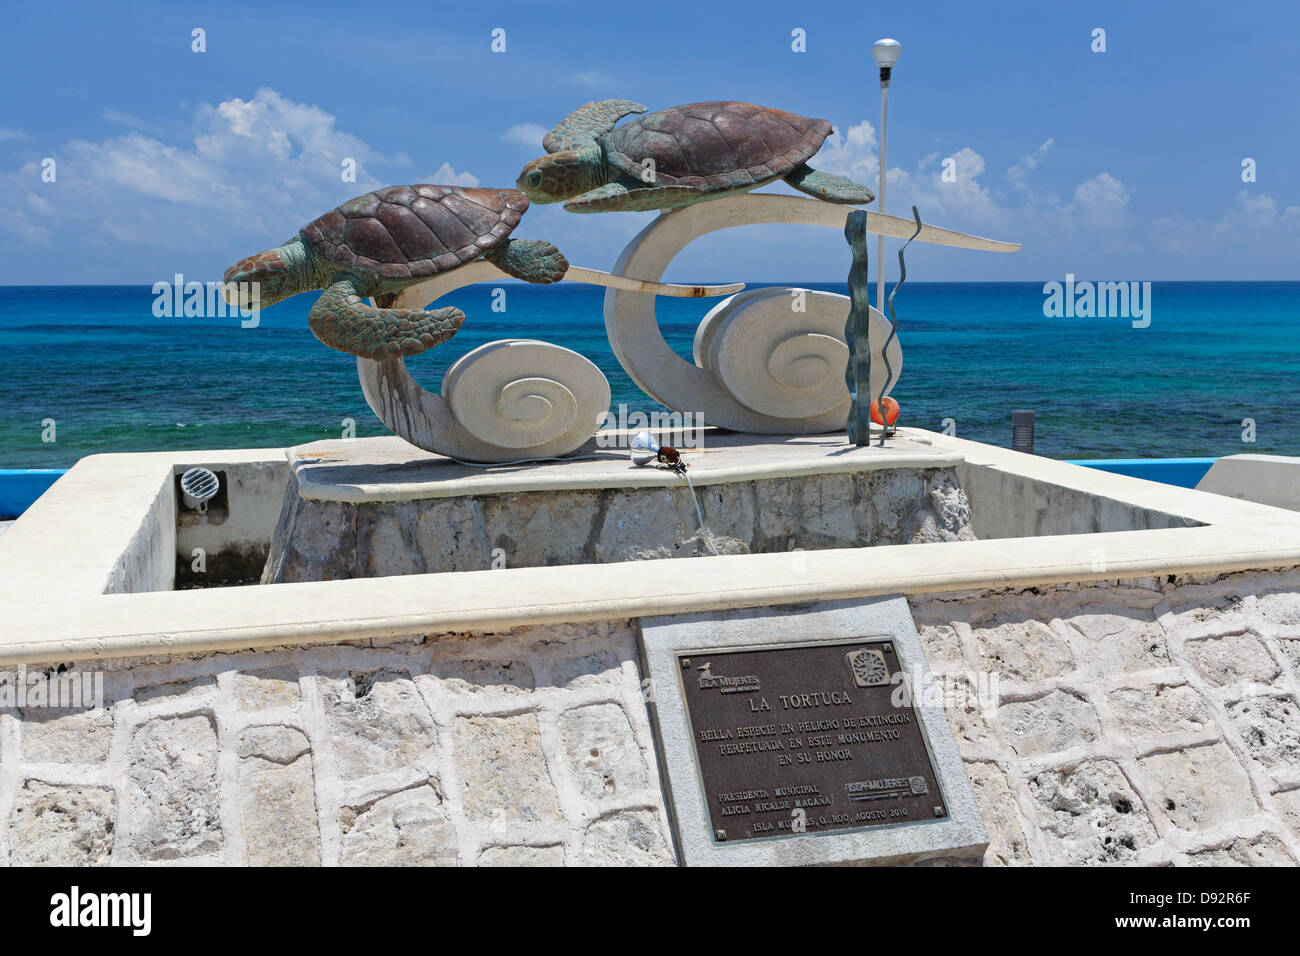 Turtle Sculpture on Isla Mujeres, Quintana Roo, Mexico - Stock Image